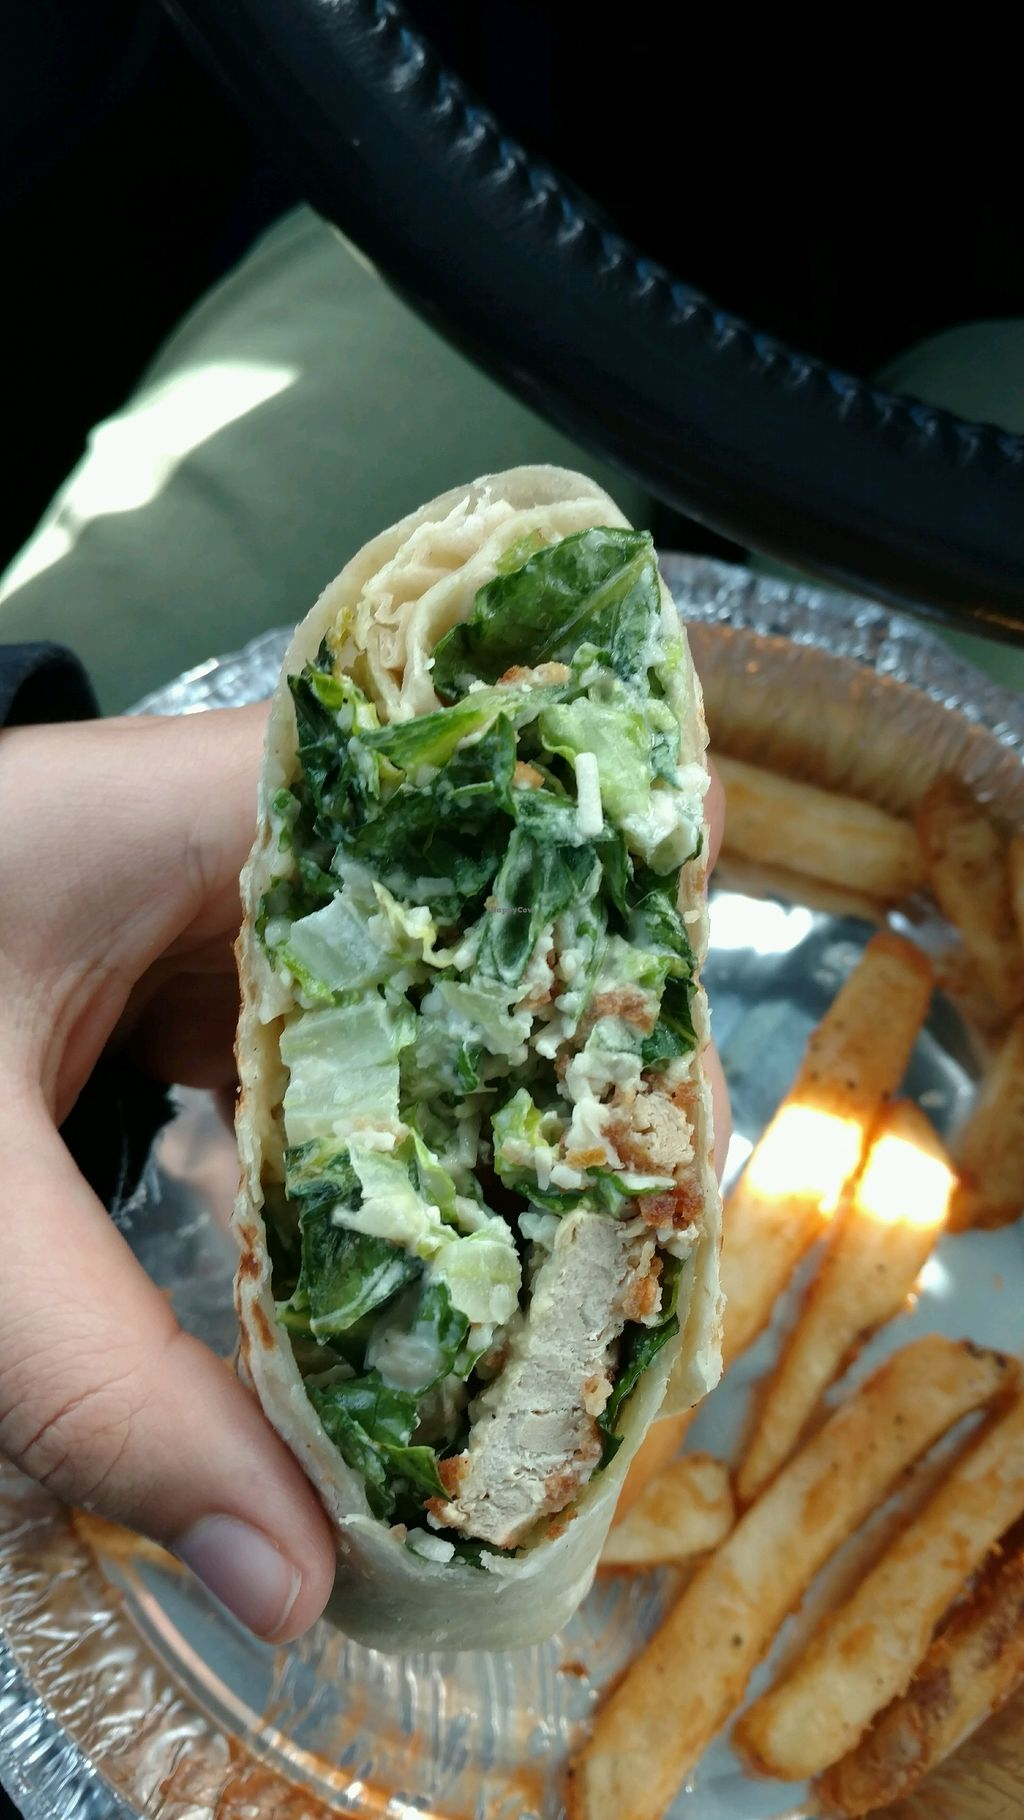 """Photo of Simply Green Cafe  by <a href=""""/members/profile/AllieGrinkevich"""">AllieGrinkevich</a> <br/>Vegan Chicken Ceasar Wrap <br/> April 9, 2018  - <a href='/contact/abuse/image/93872/383014'>Report</a>"""